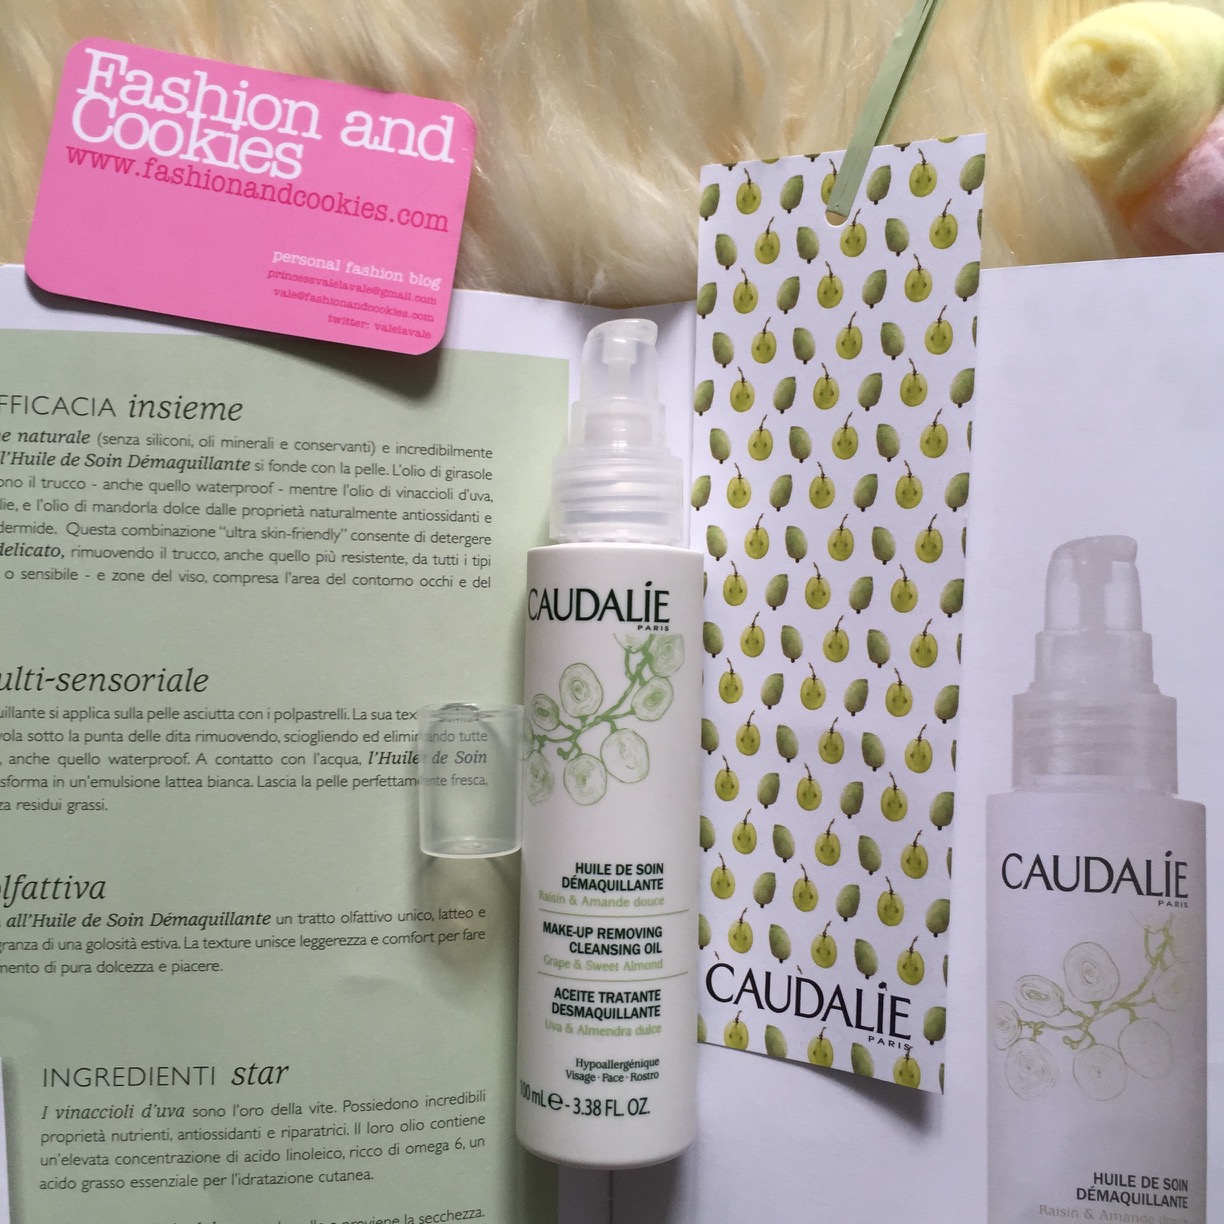 Caudalie Huile de Soin Démaquillante Oilo struccante trattante recensione, review on Fashion and Cookies fashion and beauty blog